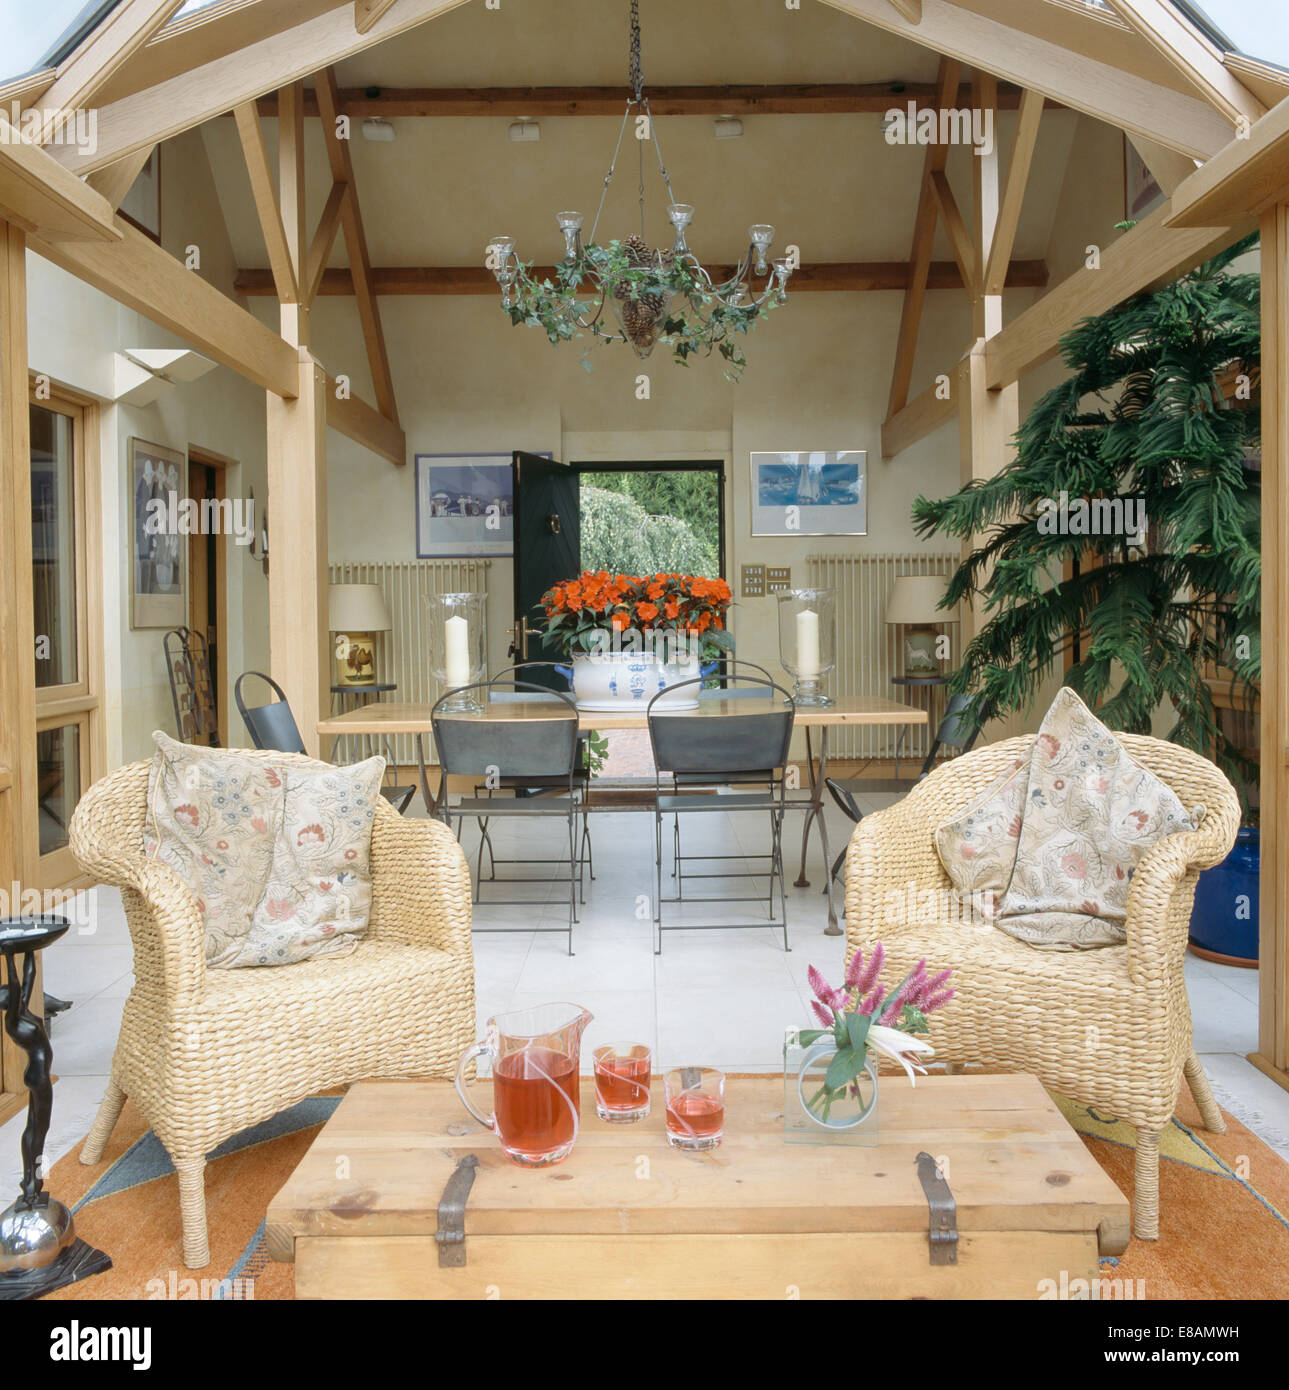 seagrass chairs and pine table in conservatory extension of modern